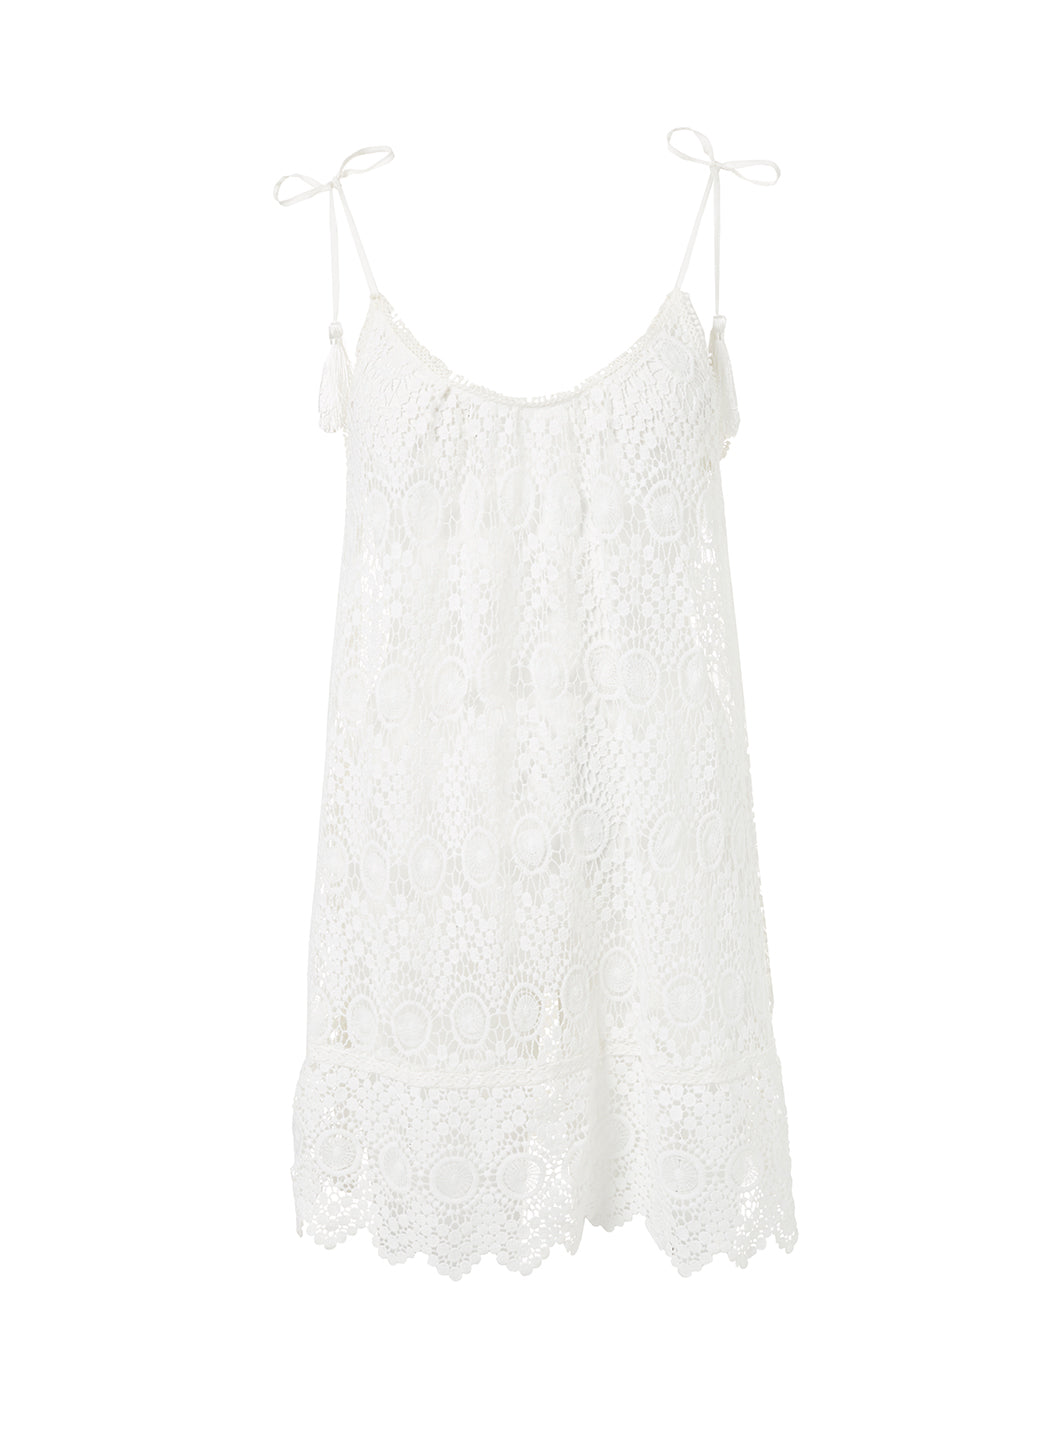 Ana Cream Lace Short Tie-Shoulder Beach Dress - Melissa Odabash Beachwear